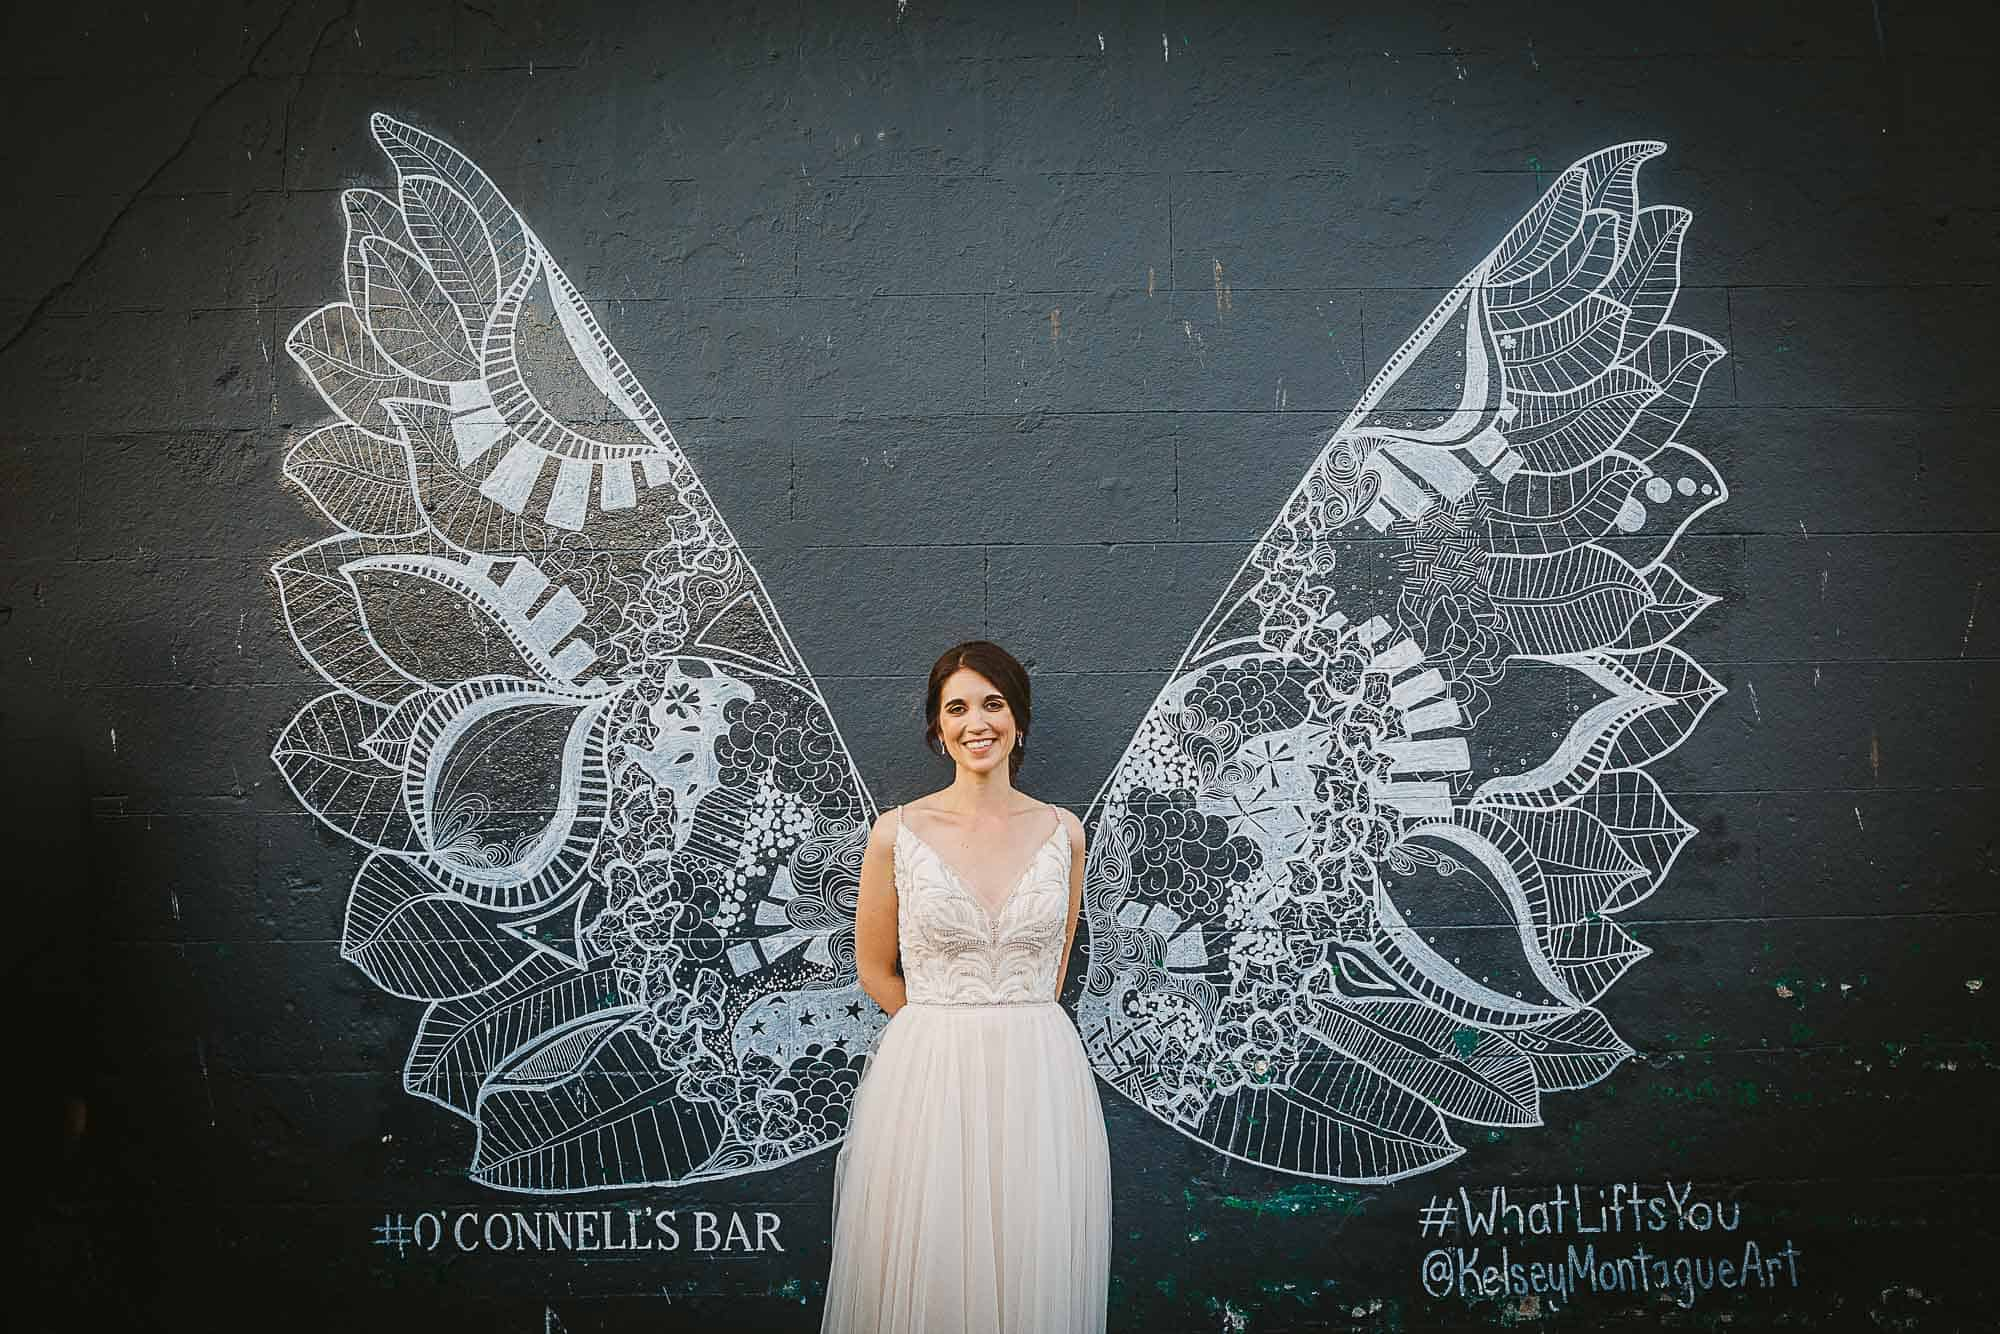 Galway City Elopement Fun, A beautiful angel, a bride stand against angel wings - street art on her Destination Wedding in Ireland